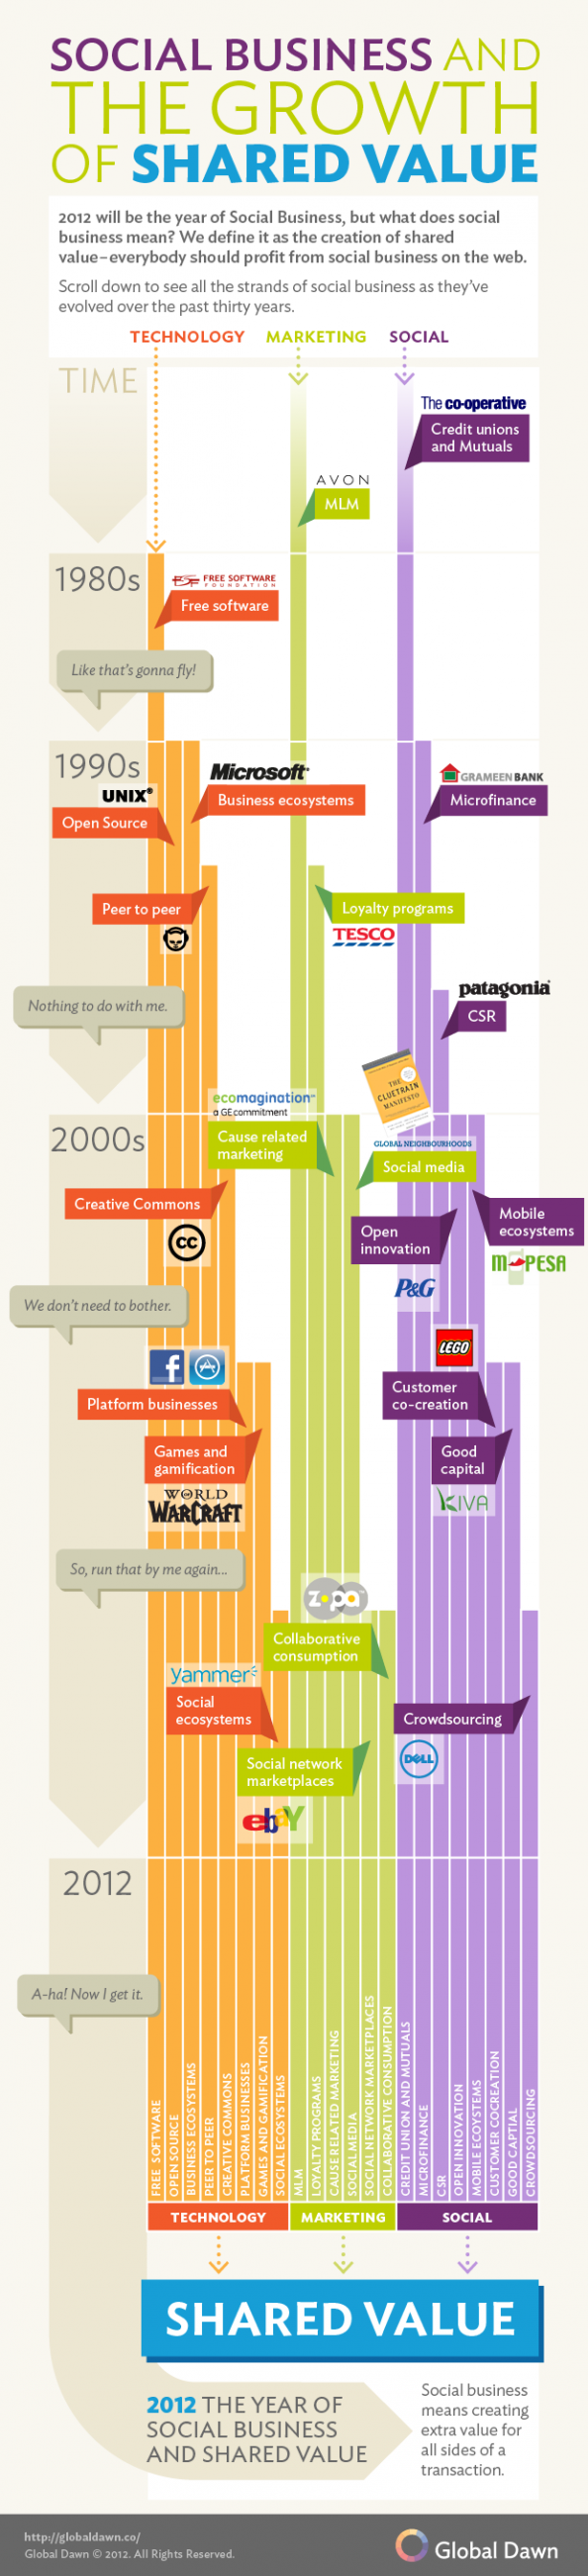 Social Business and the Growth of Shared Value Infographic